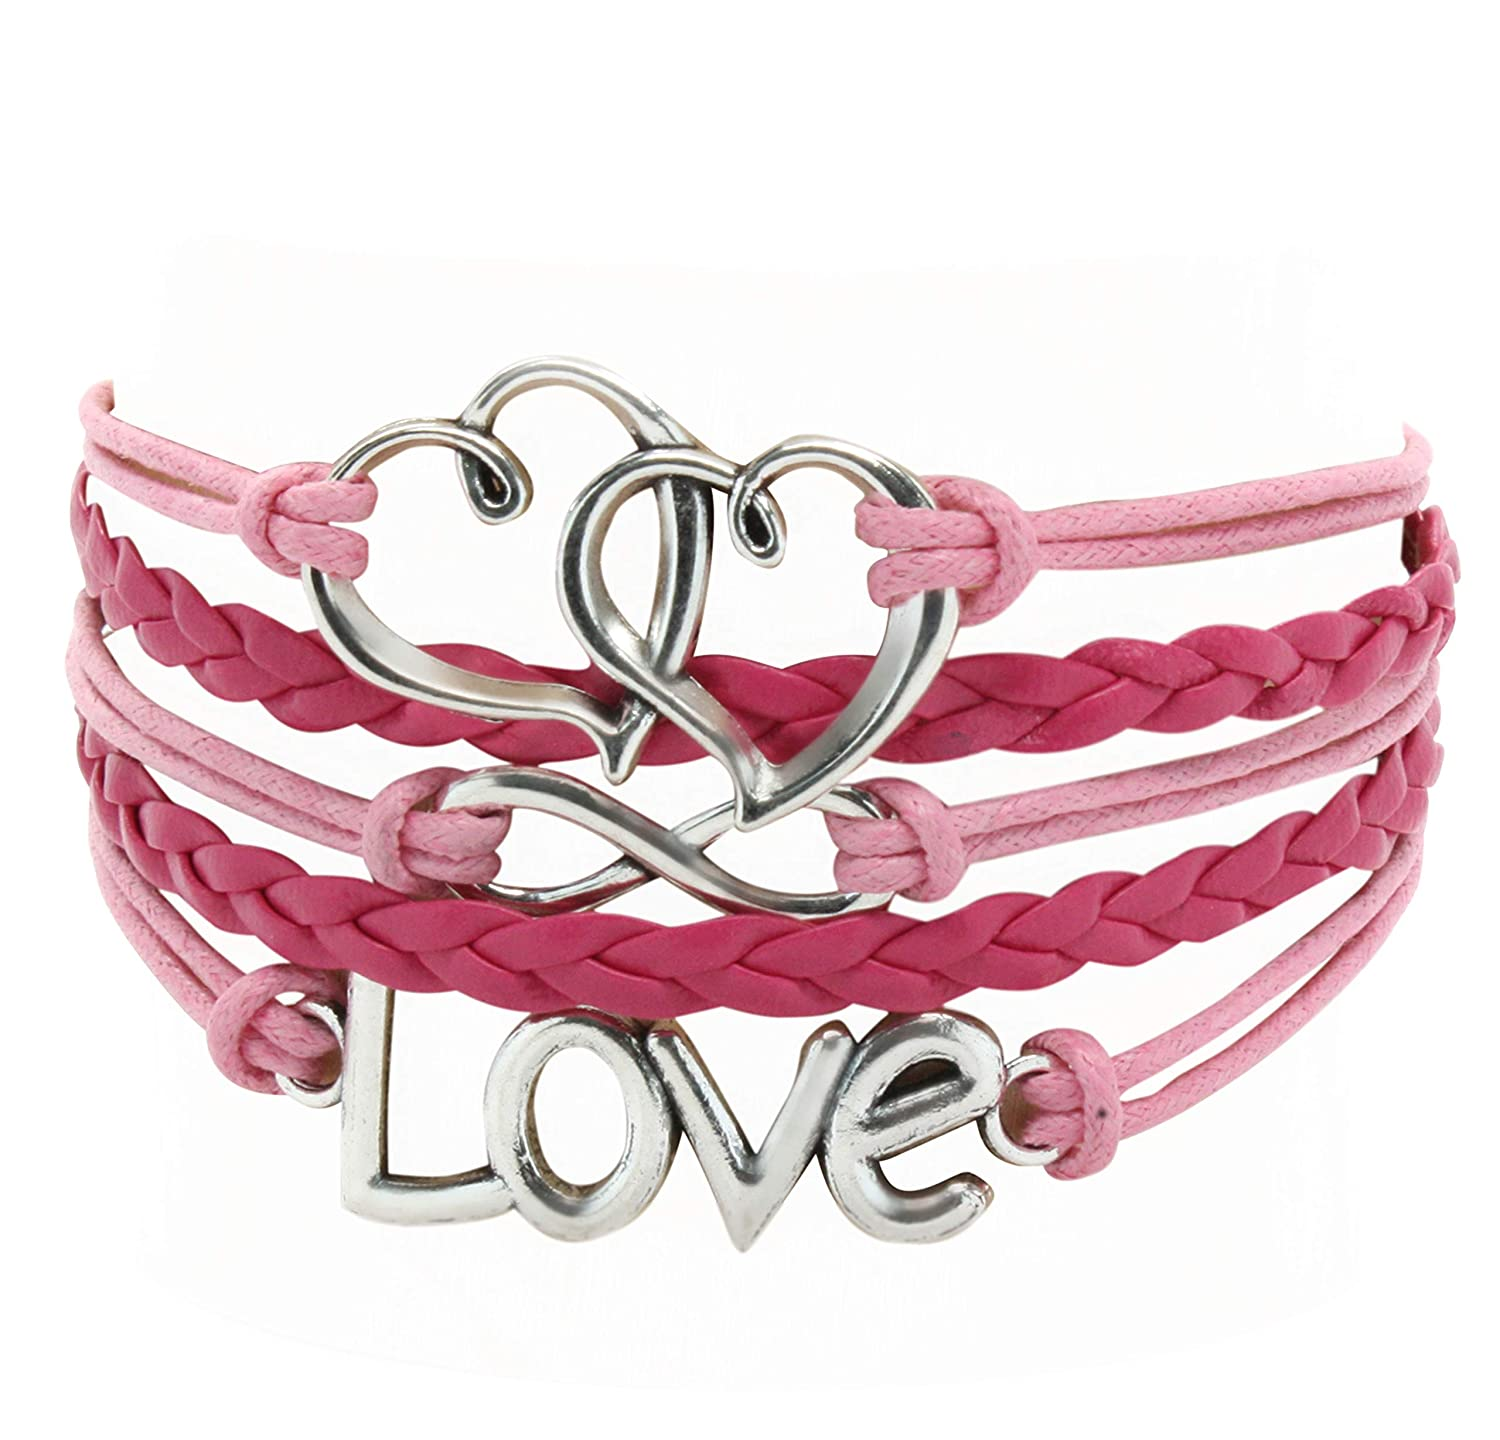 1bfe5d449 Leather Multilayer Bracelet I Trendy Leather Wrap Charm Bracelet | Genuine  Leather Bracelet for Teenage Girls & Young Women.